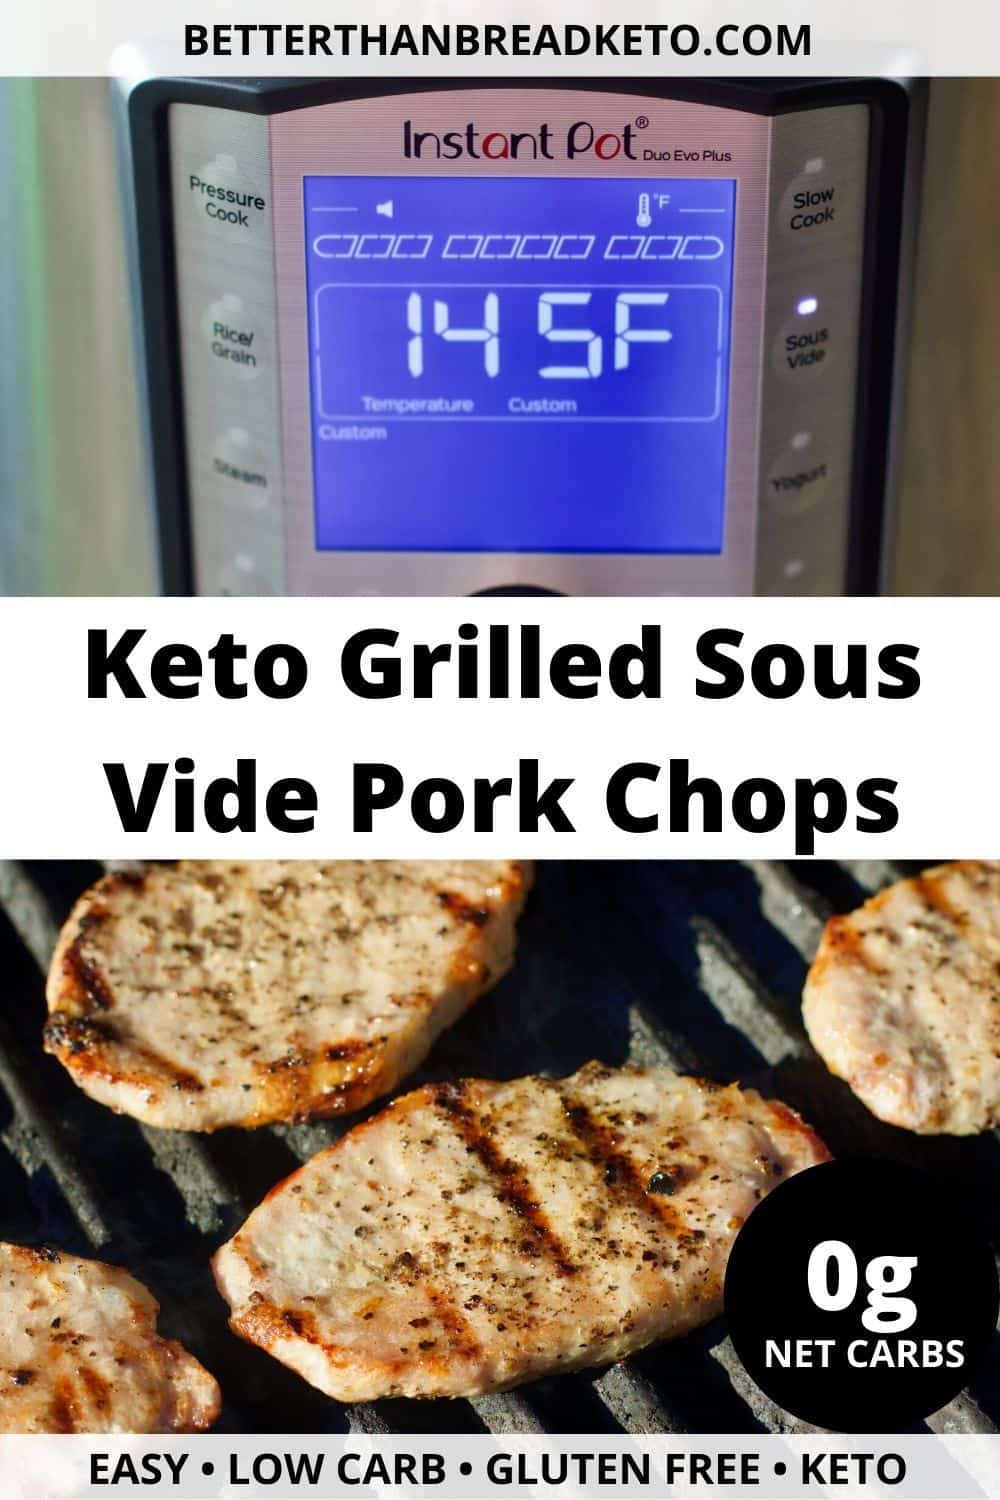 Keto Grilled Sous Vide Pork Chops